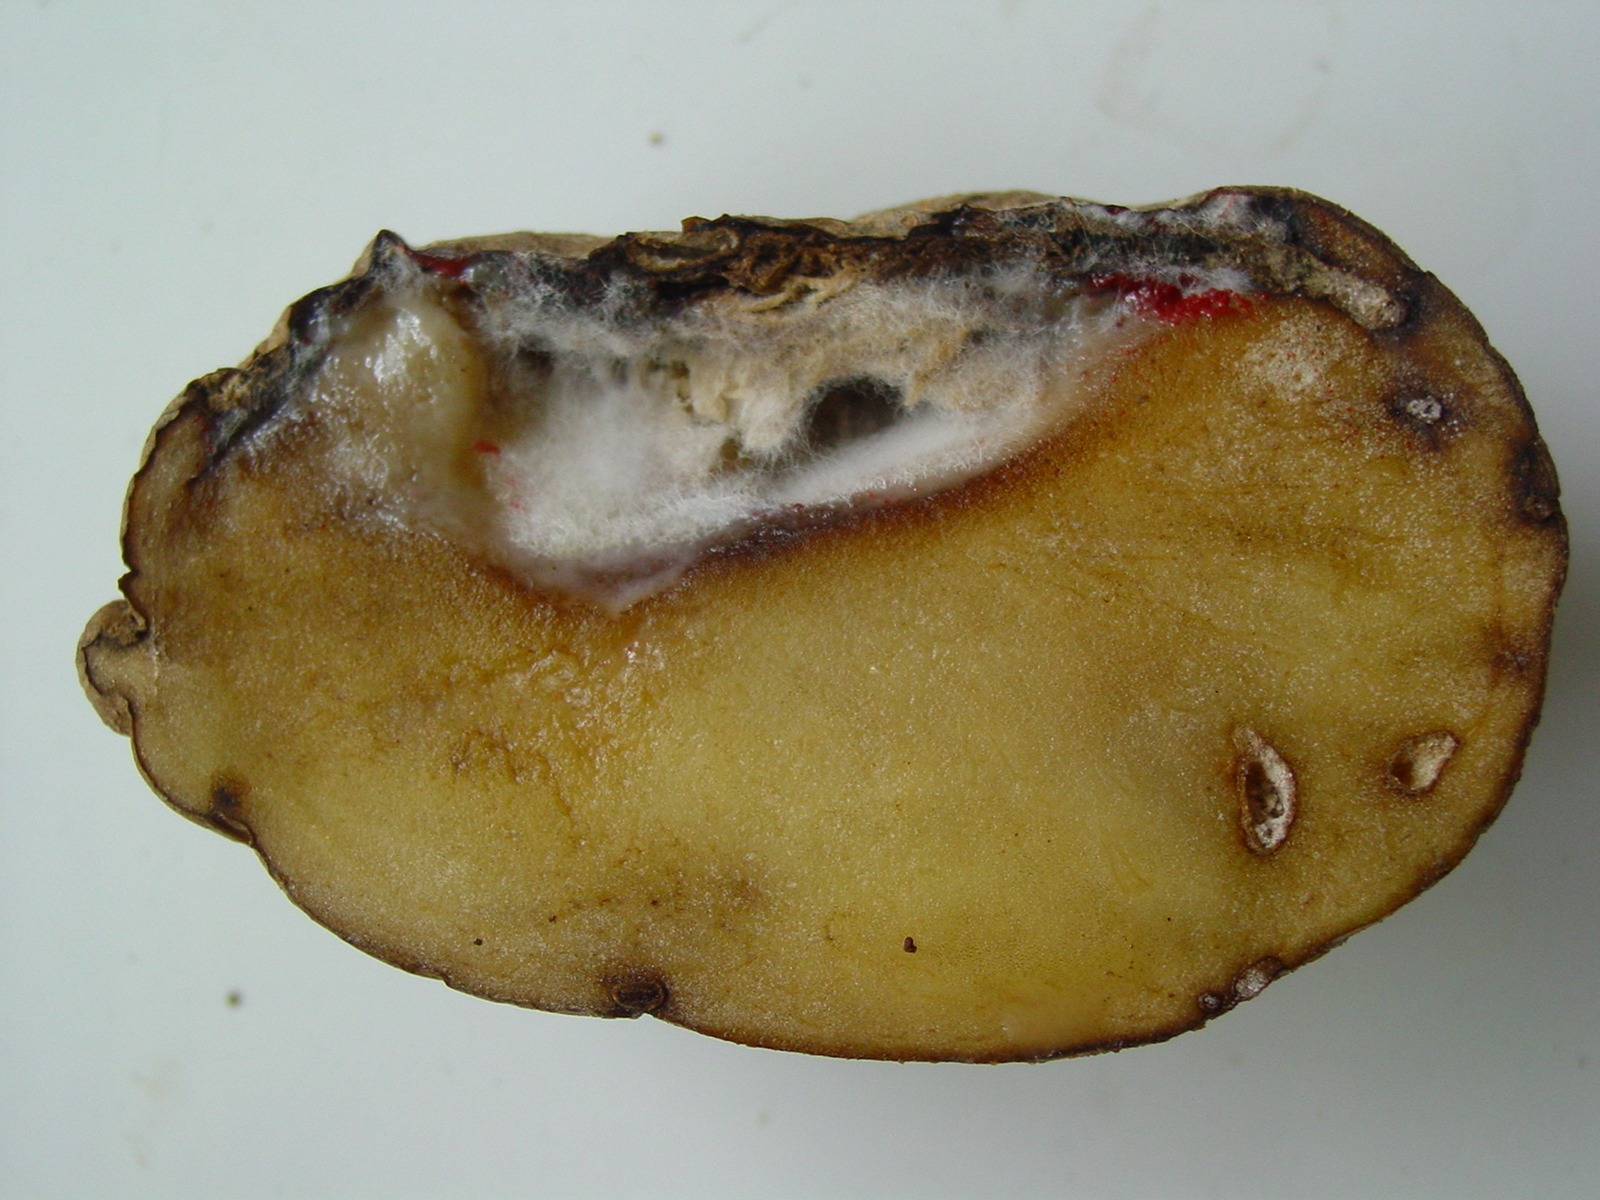 Fusarium dry rot of potatoes | Agriculture and Food